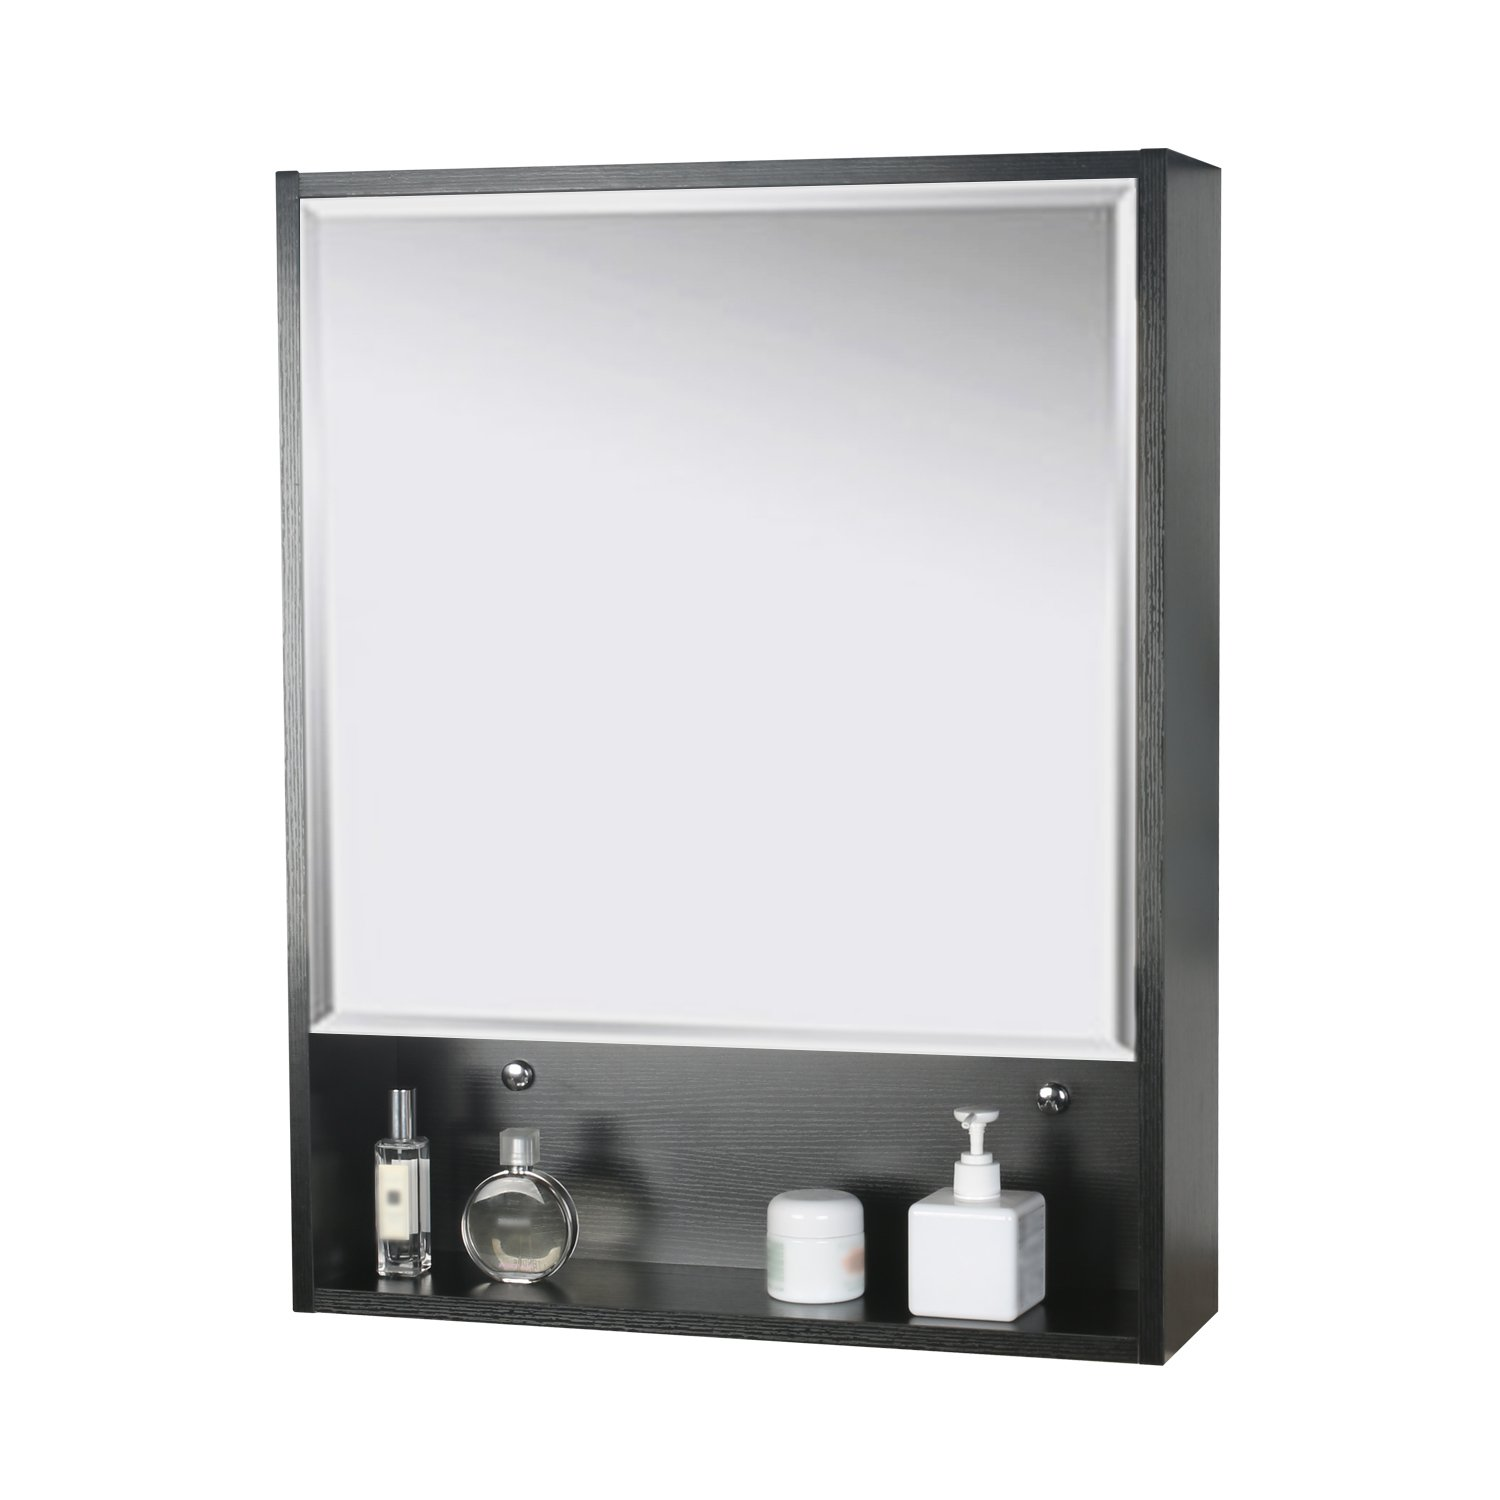 Eclife 22 x 28 39 39 large storage bathroom medicine cabinet - Large medicine cabinet mirror bathroom ...